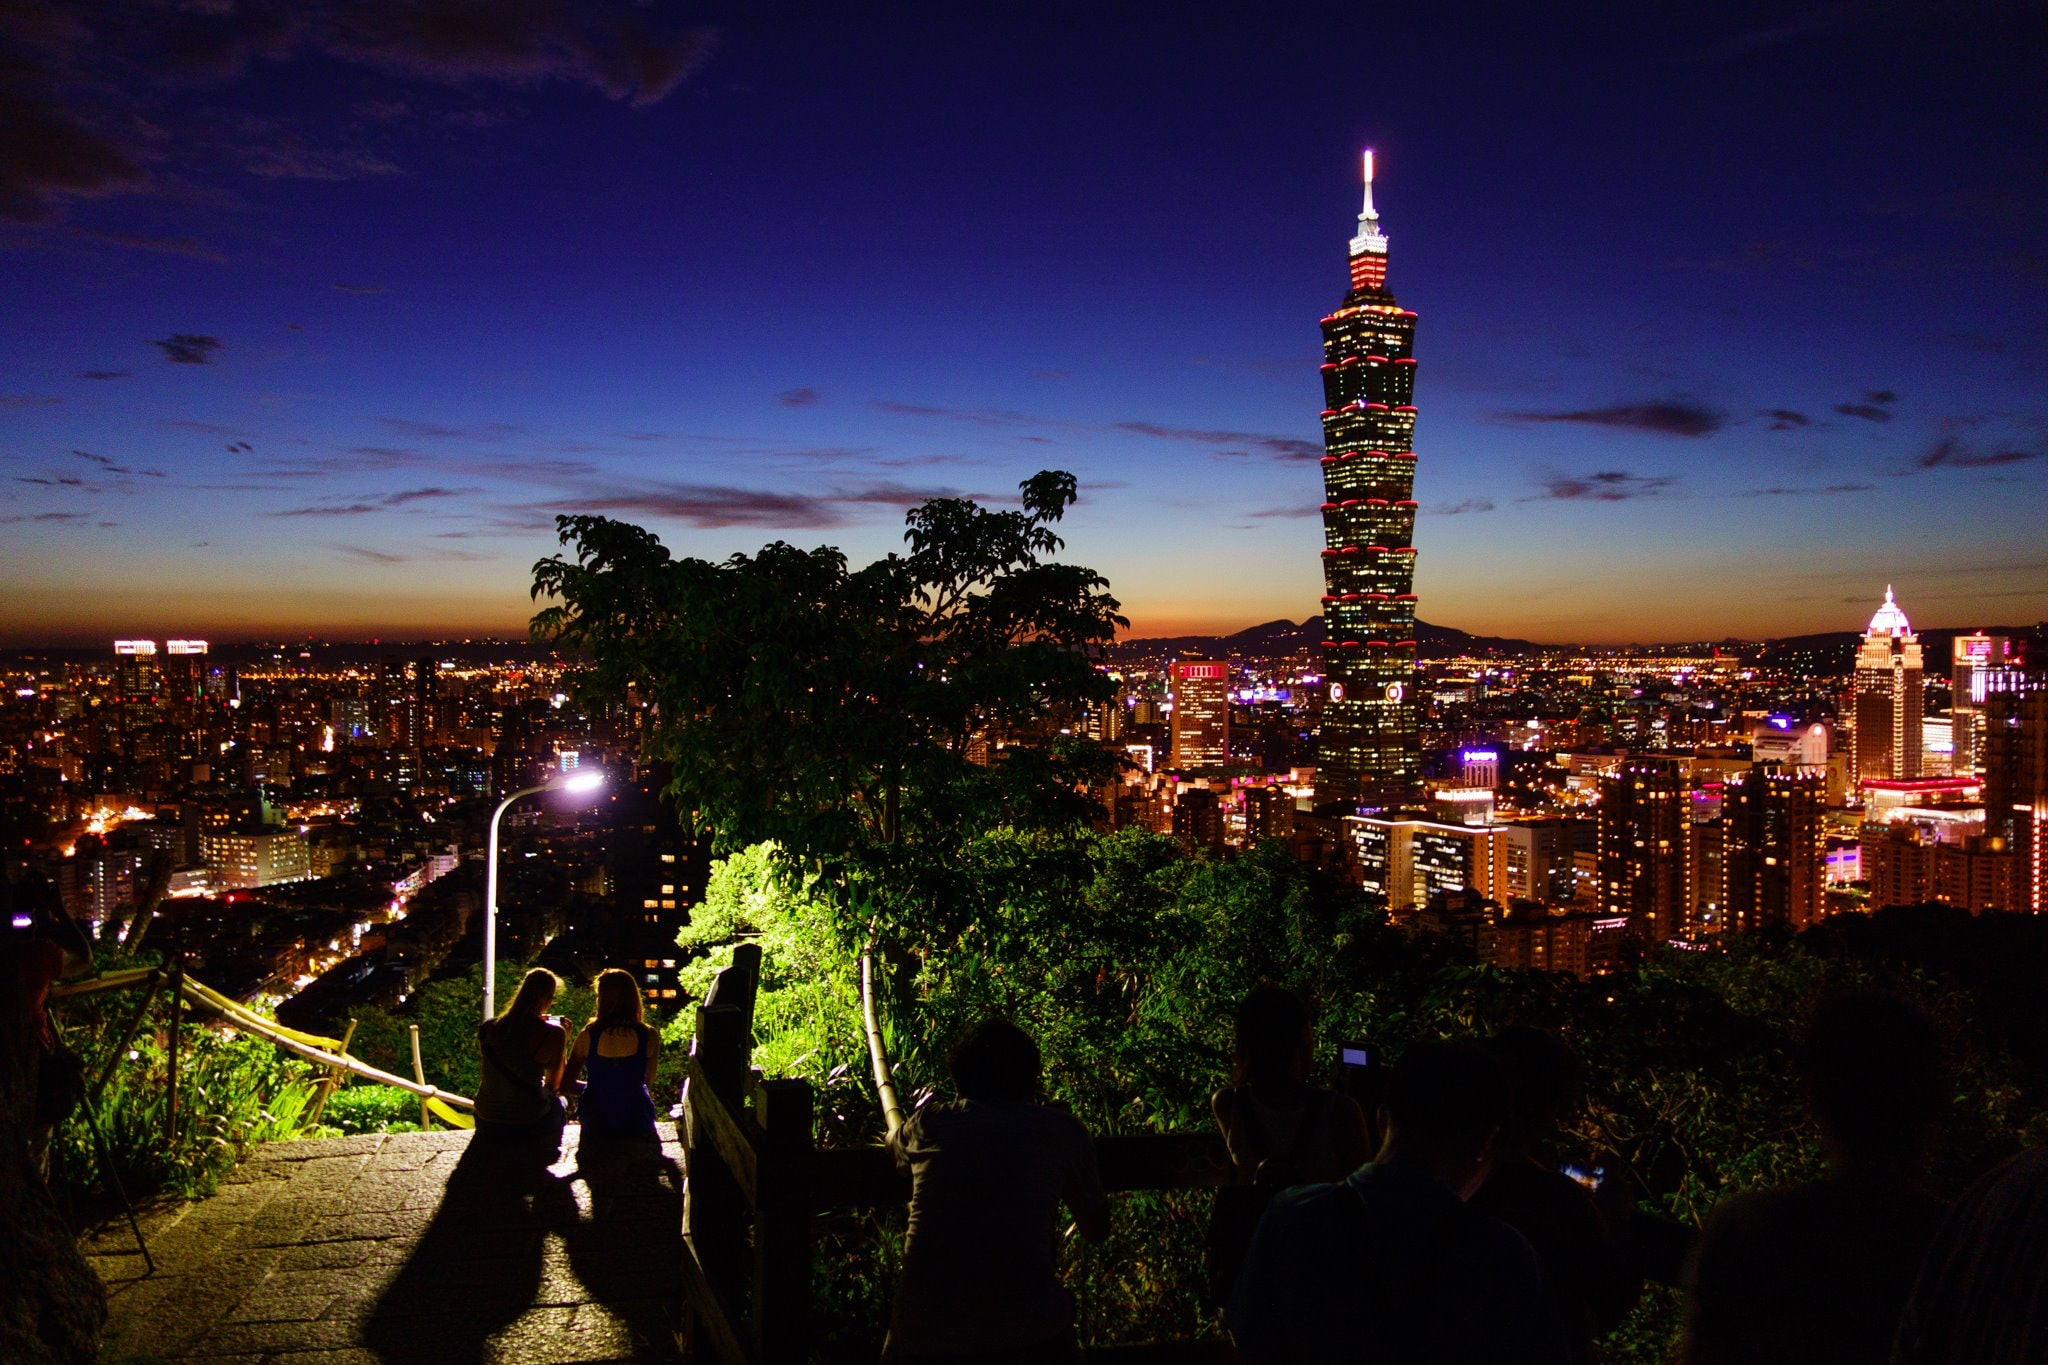 People on top of a hill admiring the Taipei cityscape and Taipei 101 skyscraper at night